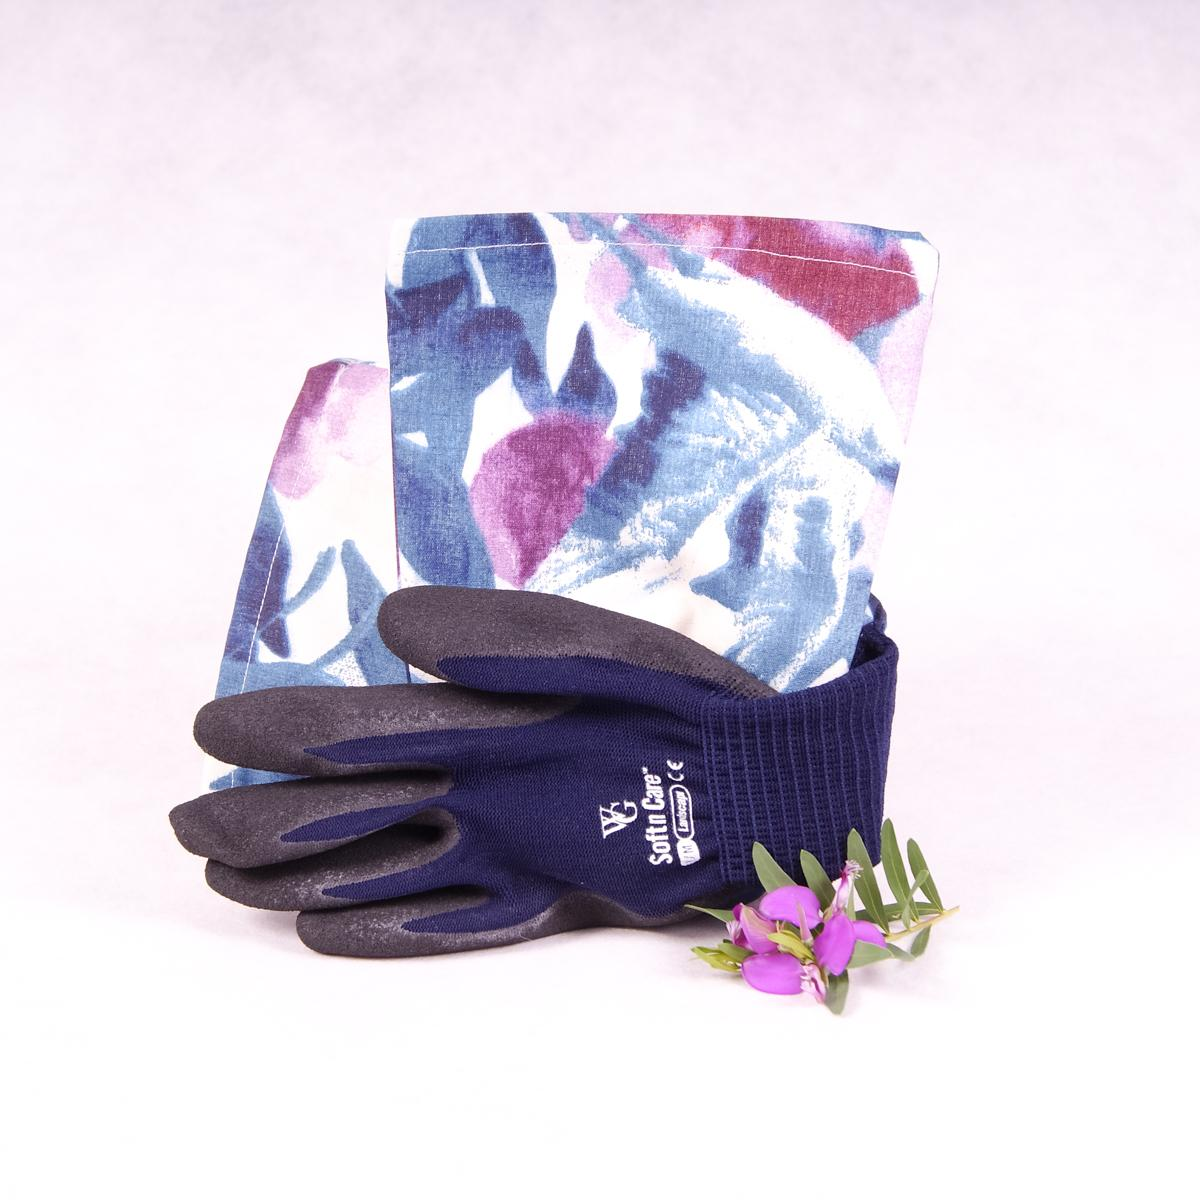 Long sleeve gardening gloves - Plum Purple - Gloves - Throw Some Seeds - Australian gardening gifts and eco products online!